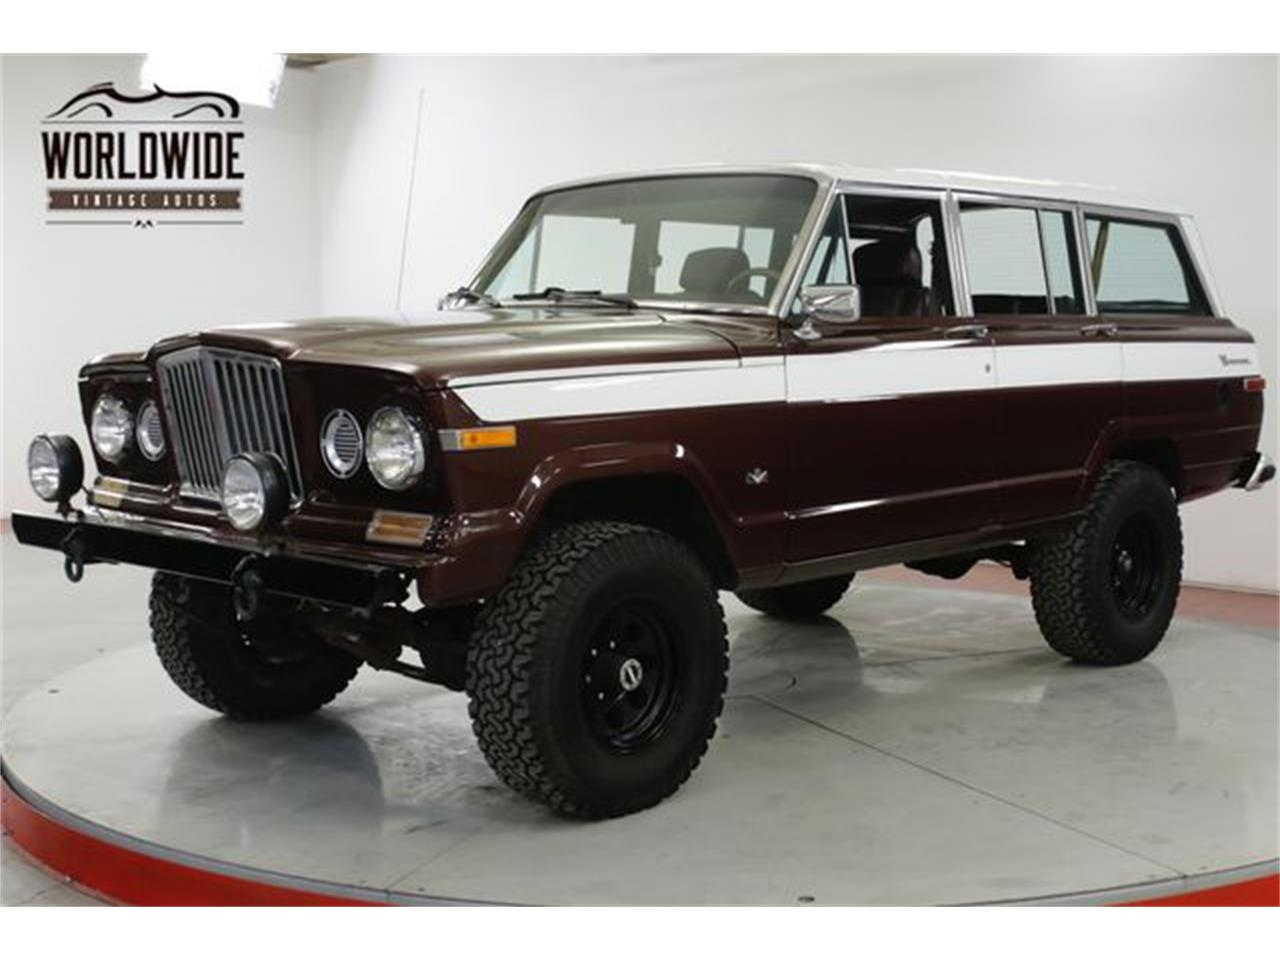 1988 jeep grand wagoneer for sale in denver co classiccarsbay com 1988 jeep grand wagoneer for sale in